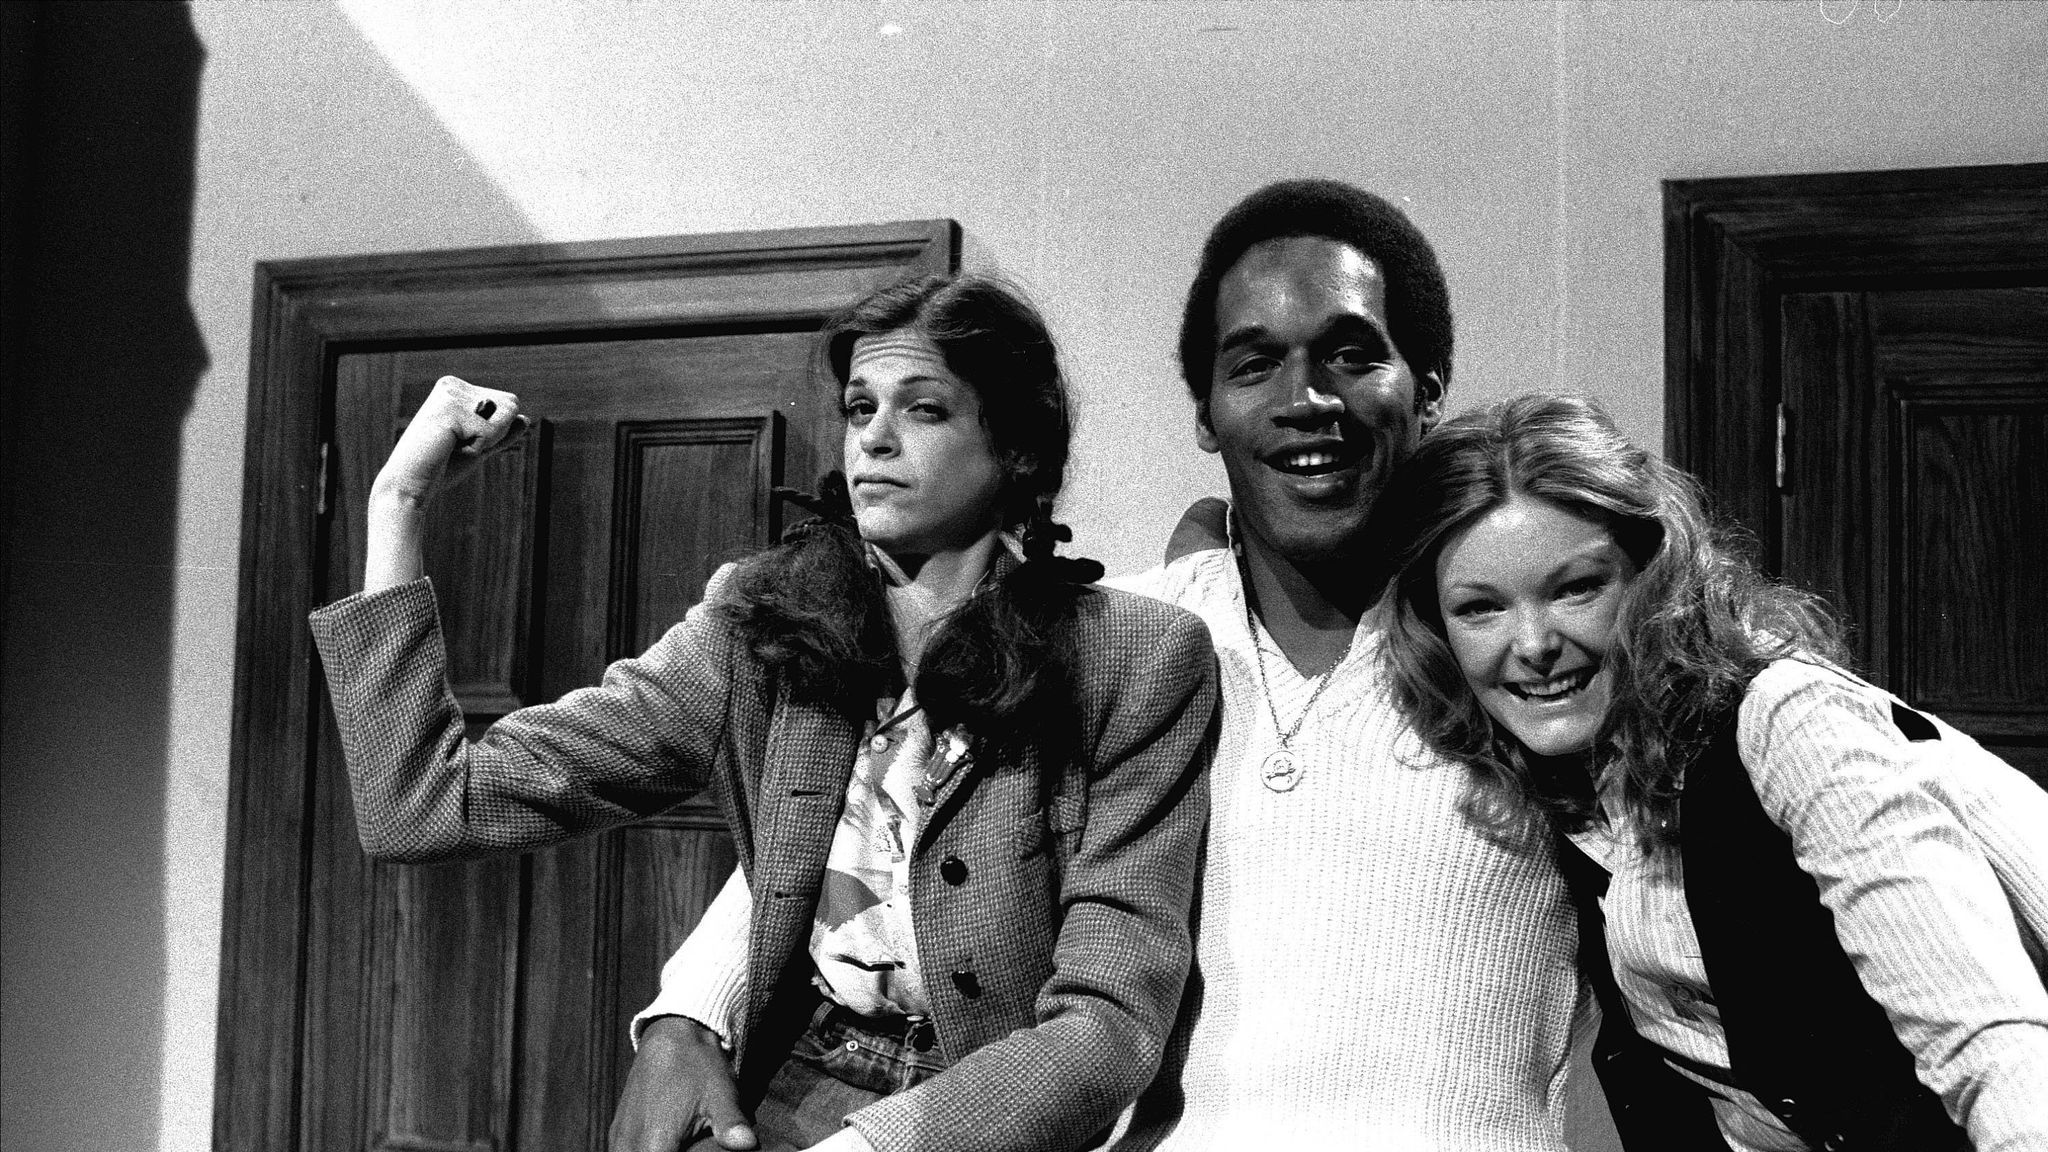 O.J. Simpson, center, poses with actresses Gilda Radner, left, and Jane Curtin while appearing on NBC's